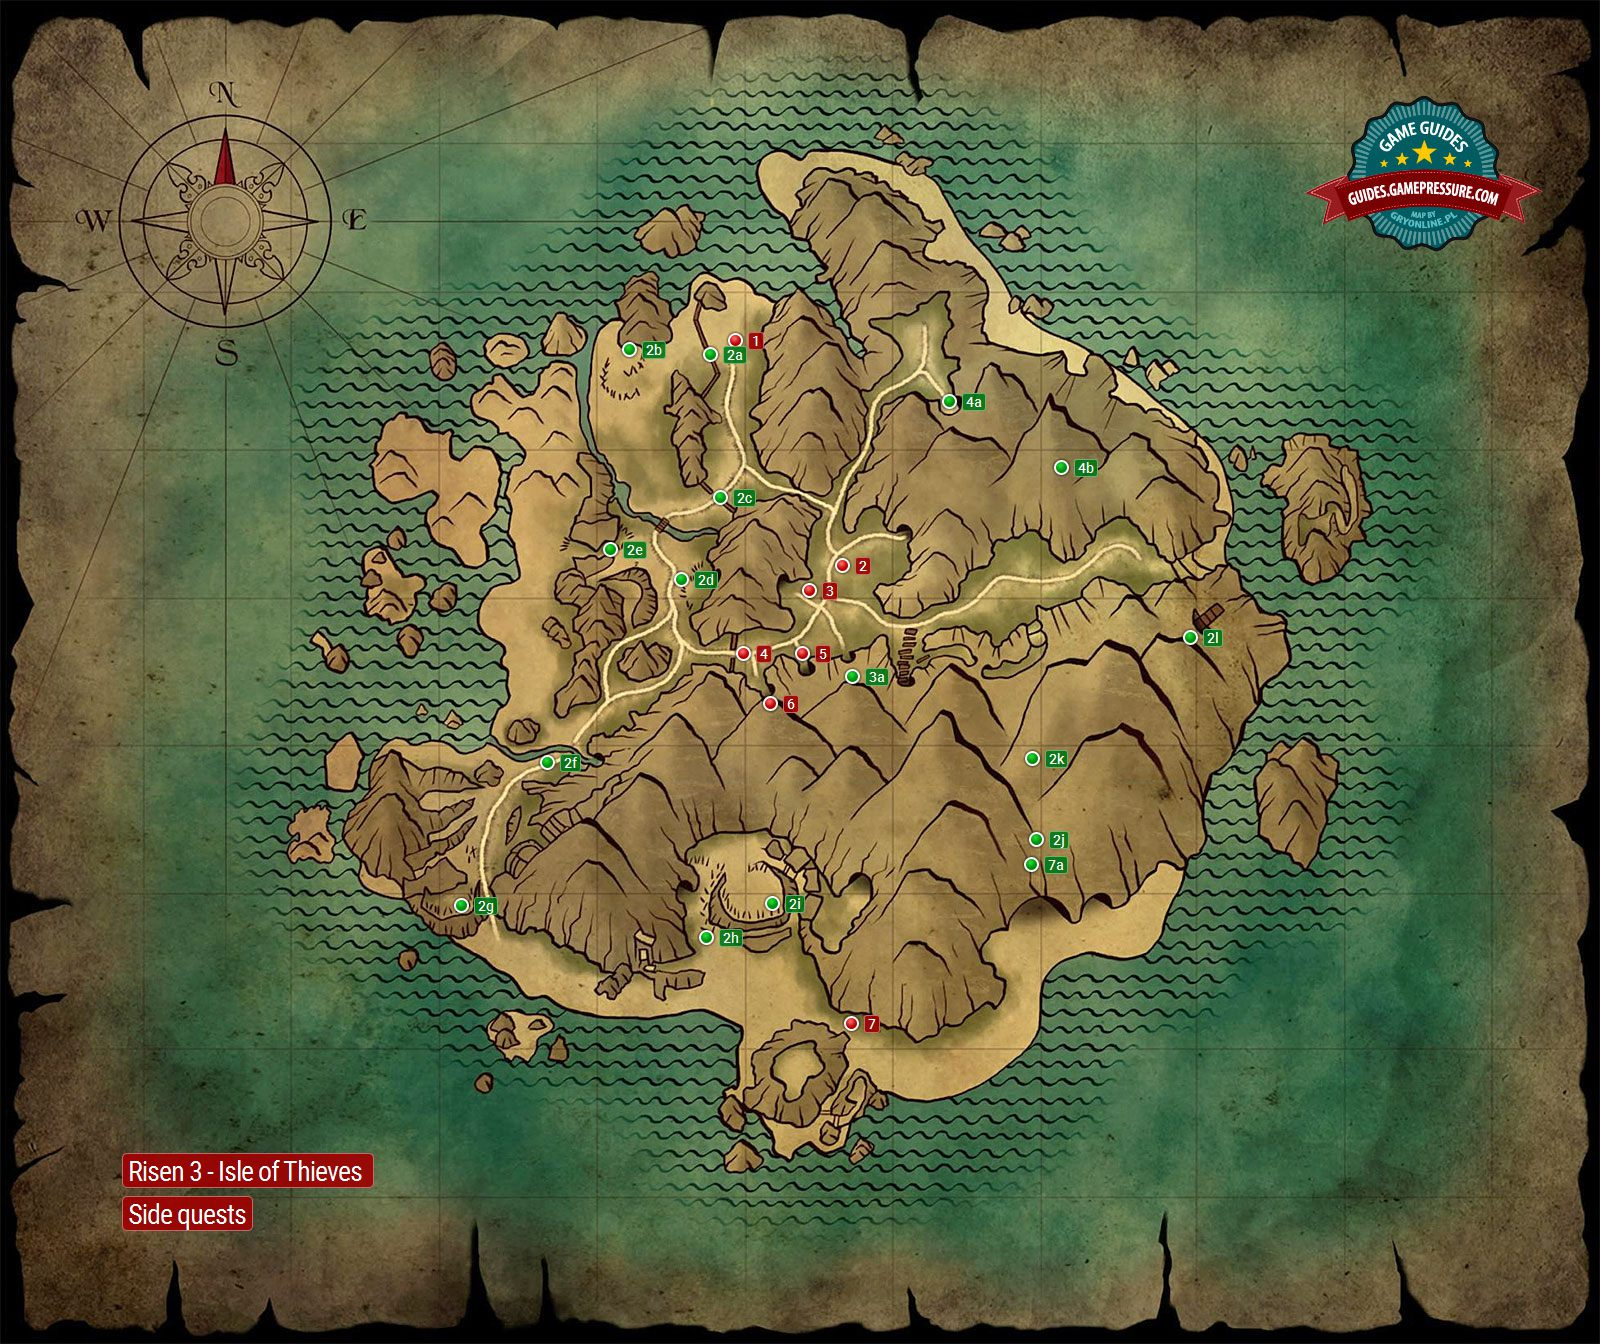 Map side quests isle of thieves risen 3 titan lords game risen 3 isle of thieves side quests gumiabroncs Gallery